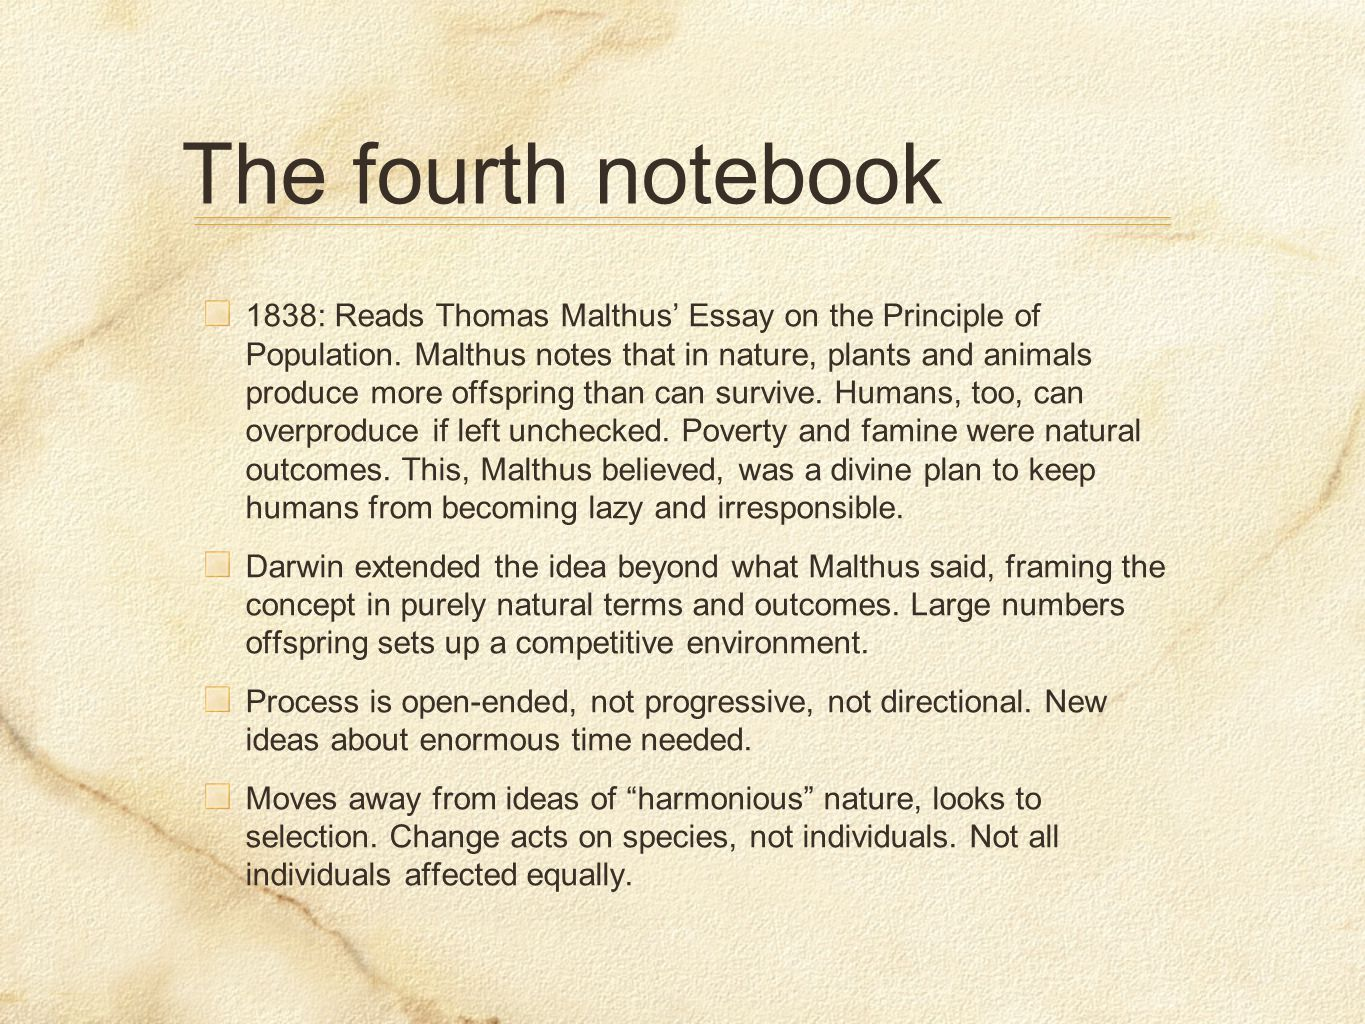 The fourth notebook 1838: Reads Thomas Malthus' Essay on the Principle of Population.